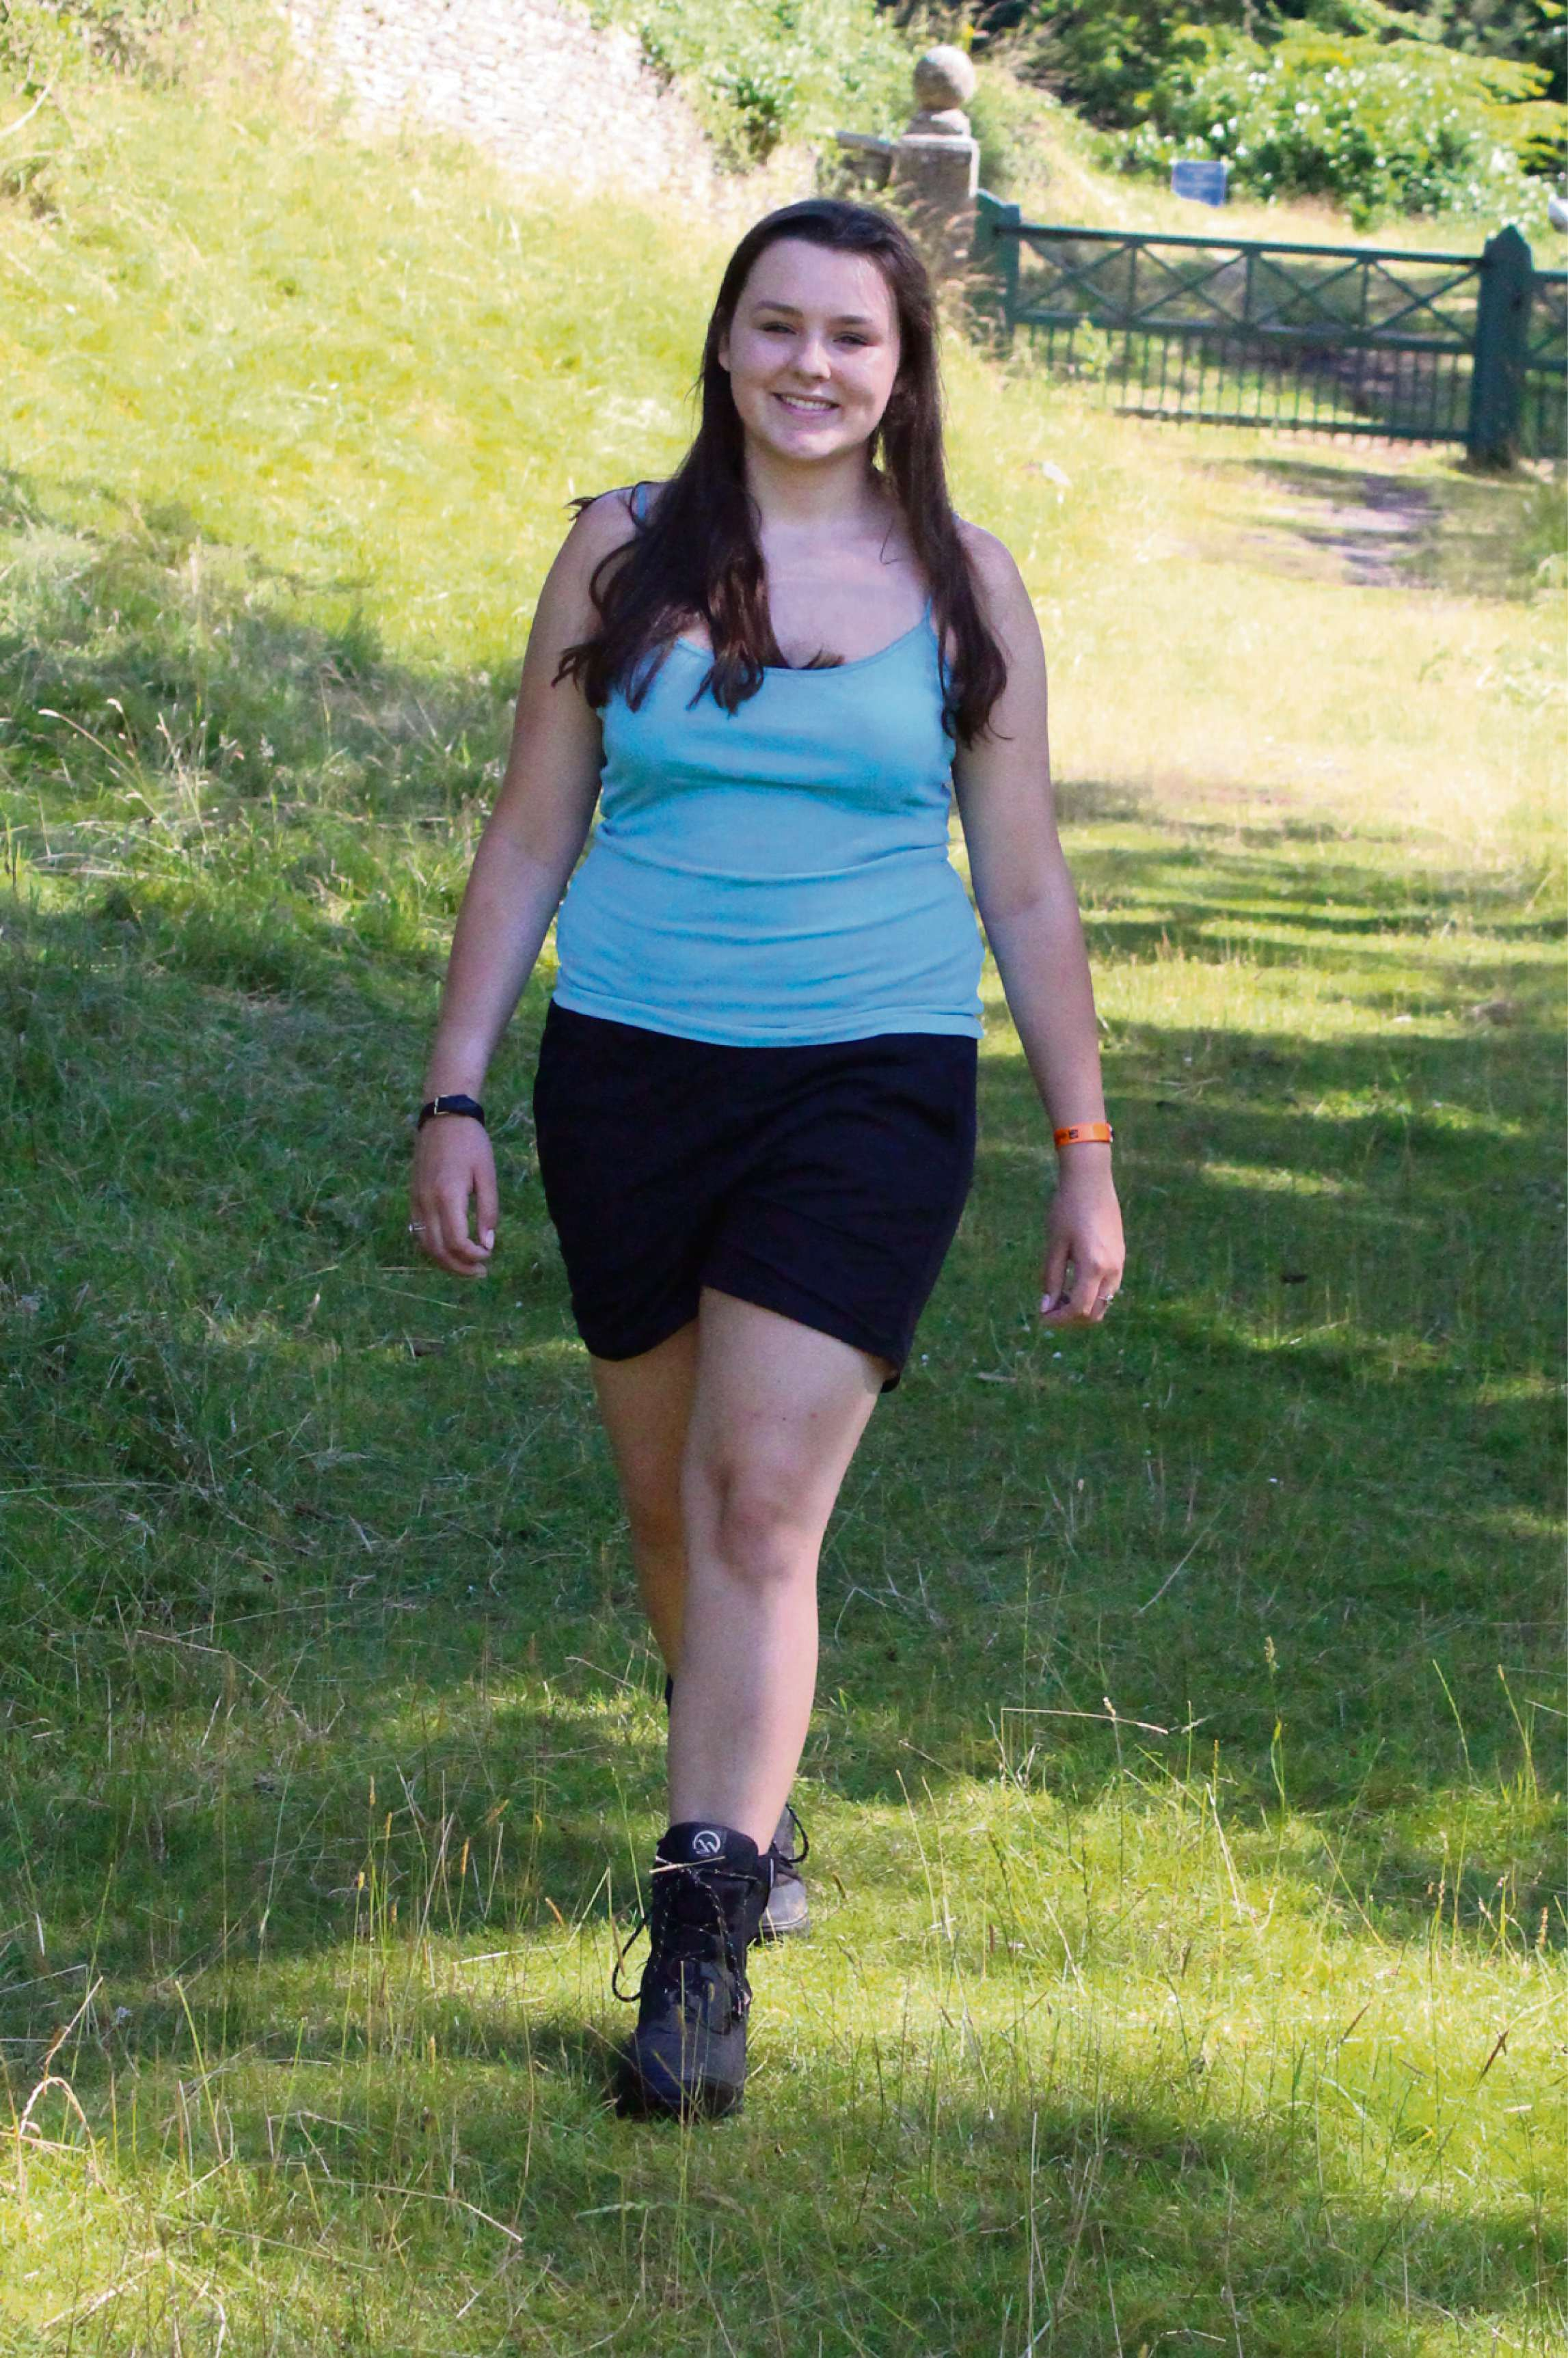 Bourton schoolgirl to walk 104 miles in memory of late father